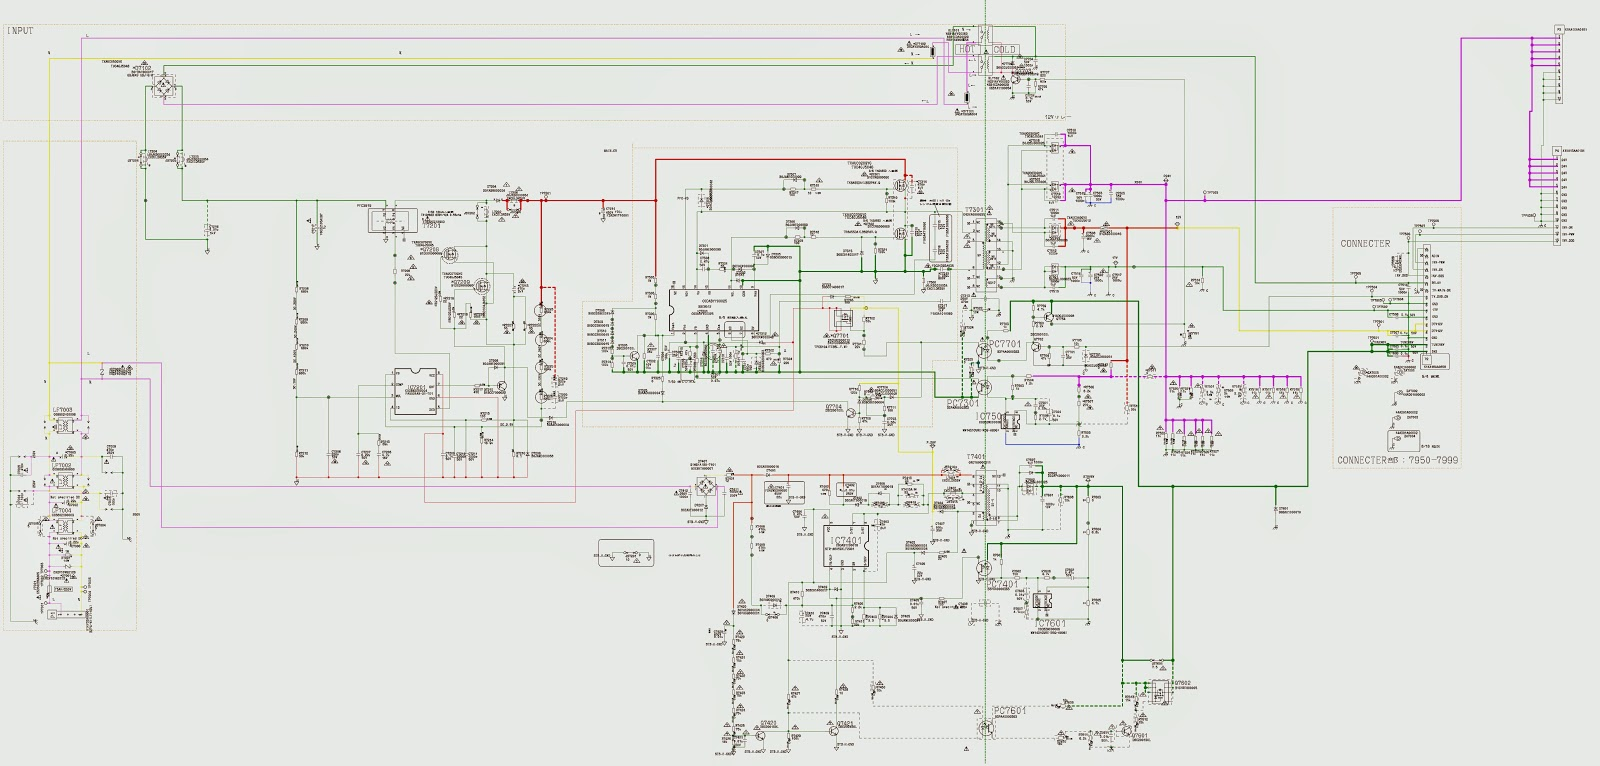 PANASONIC TC L42S20B LCD TV SMPS Power Supply SCHEMATIC Circuit ...